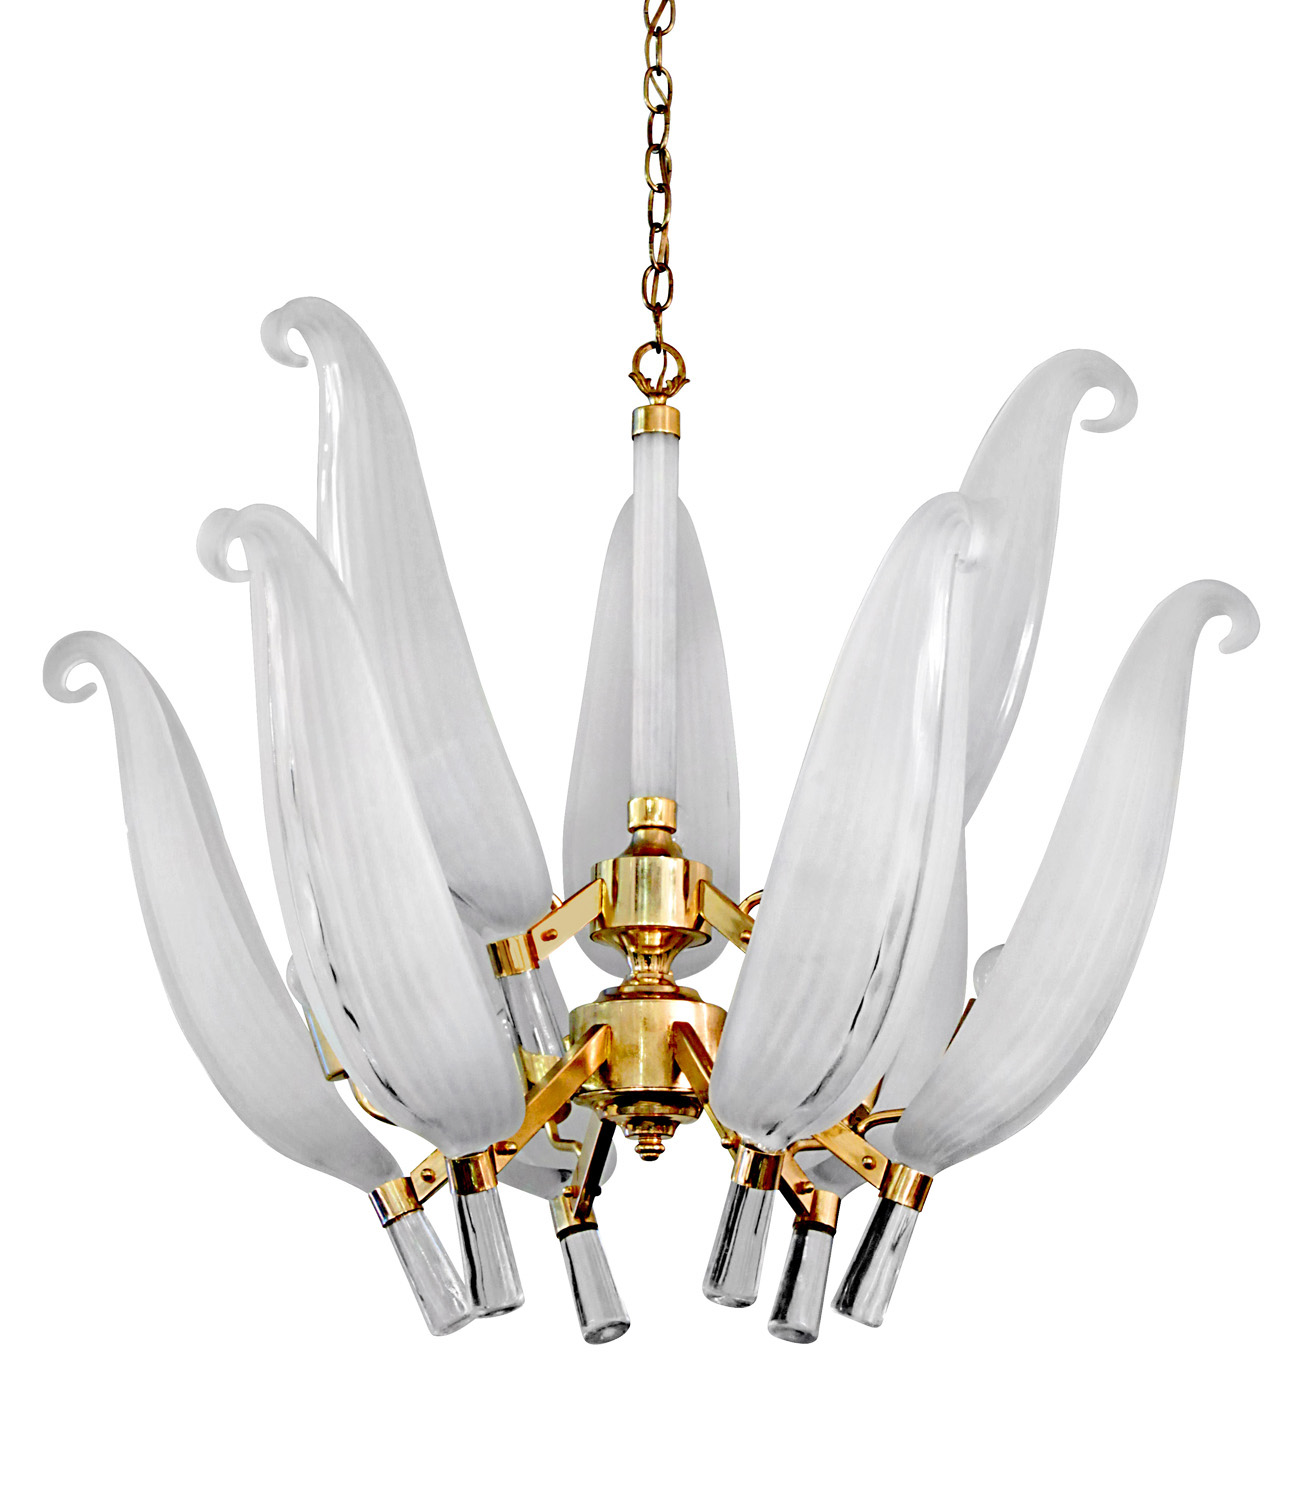 70s Murano 2 tier glass leaves chandelier184 hires.jpg